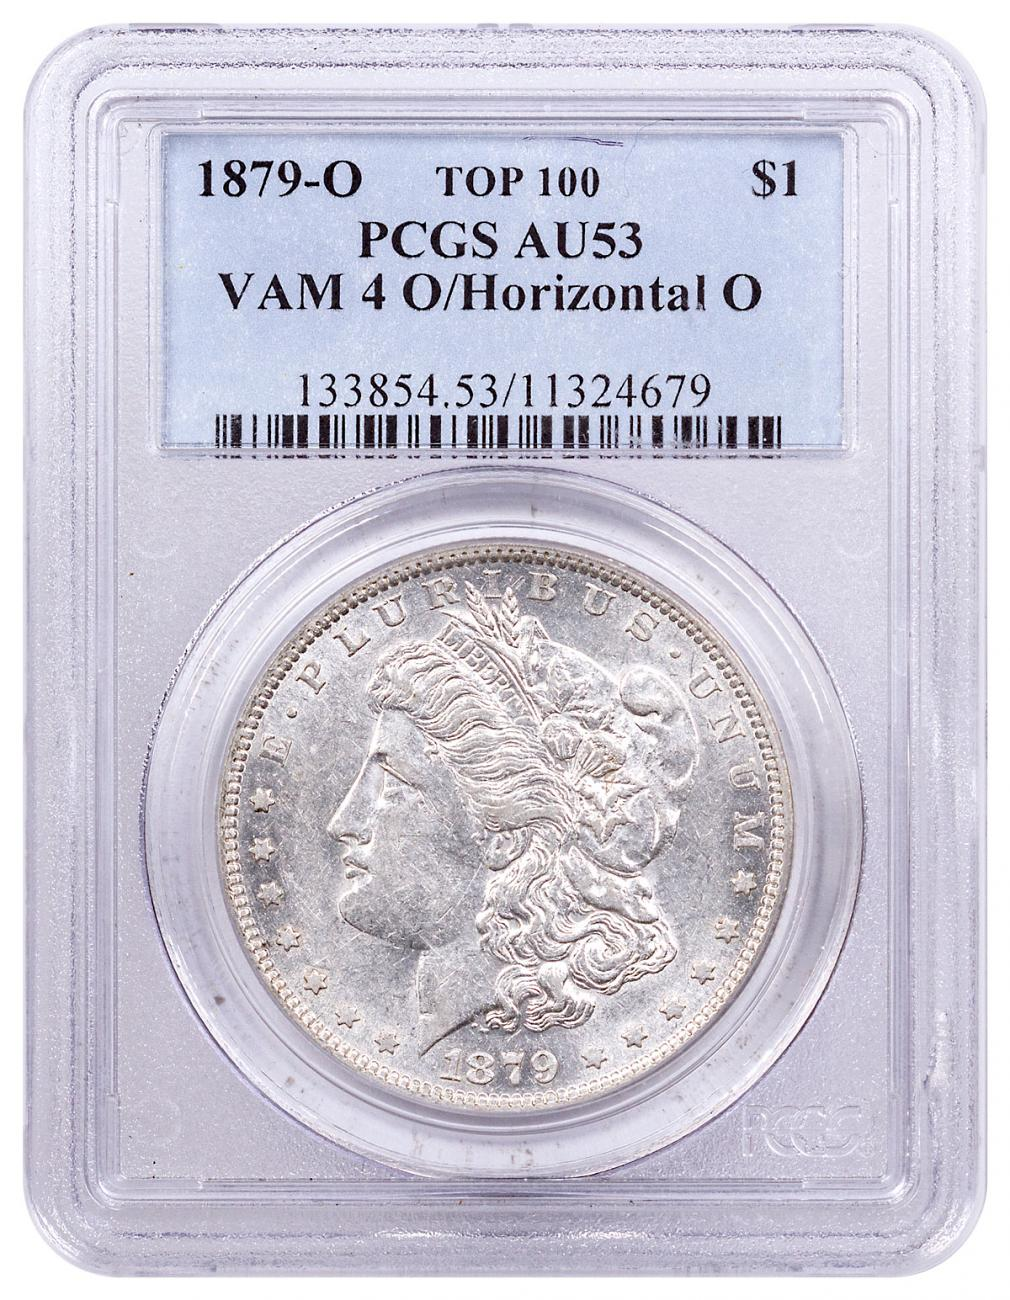 1879-O Morgan Silver Dollar Top 100 PCGS AU53 VAM-4 O/Horizontal O